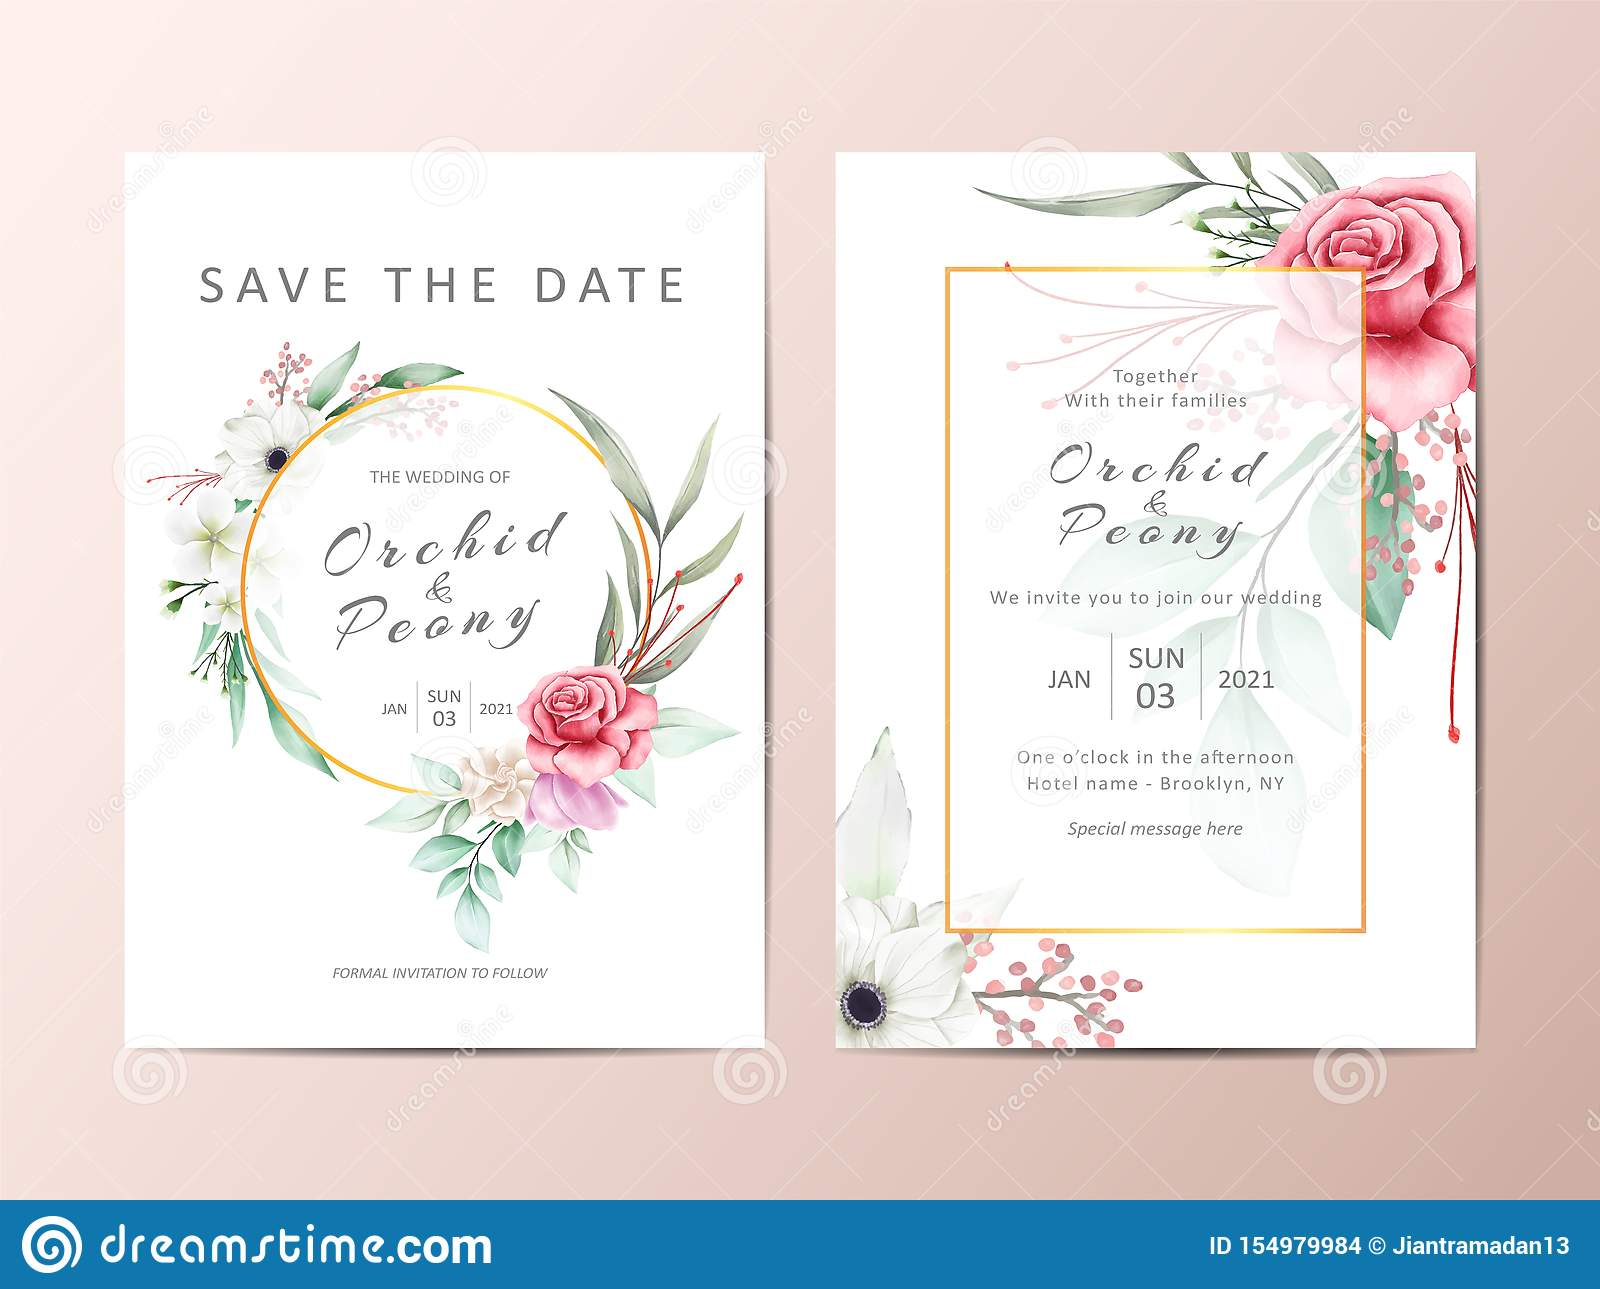 Elegant Wedding Invitation Template Cards With Watercolor Flowers ...